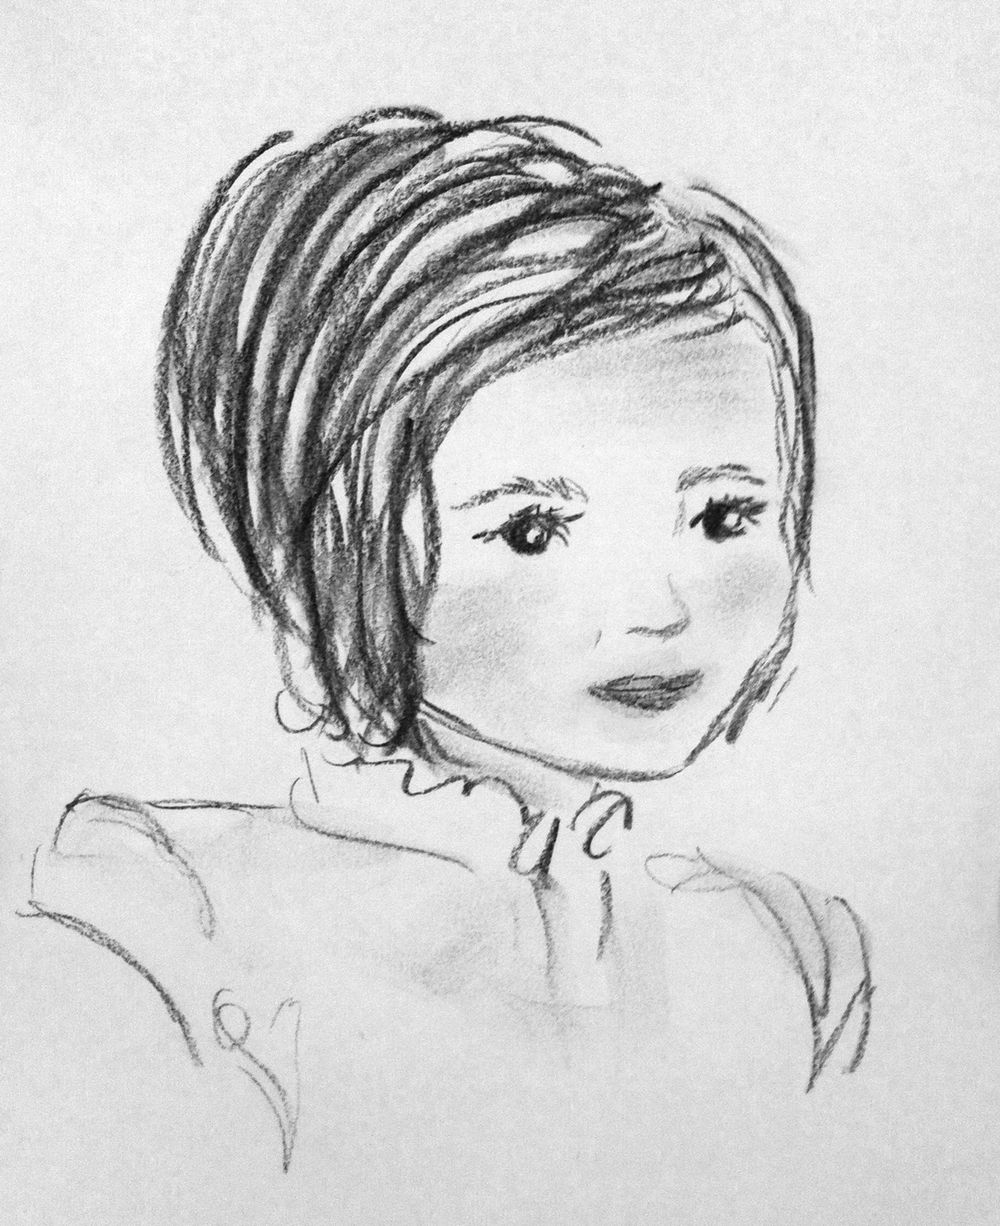 girl1 sketch_allynHoward.jpg